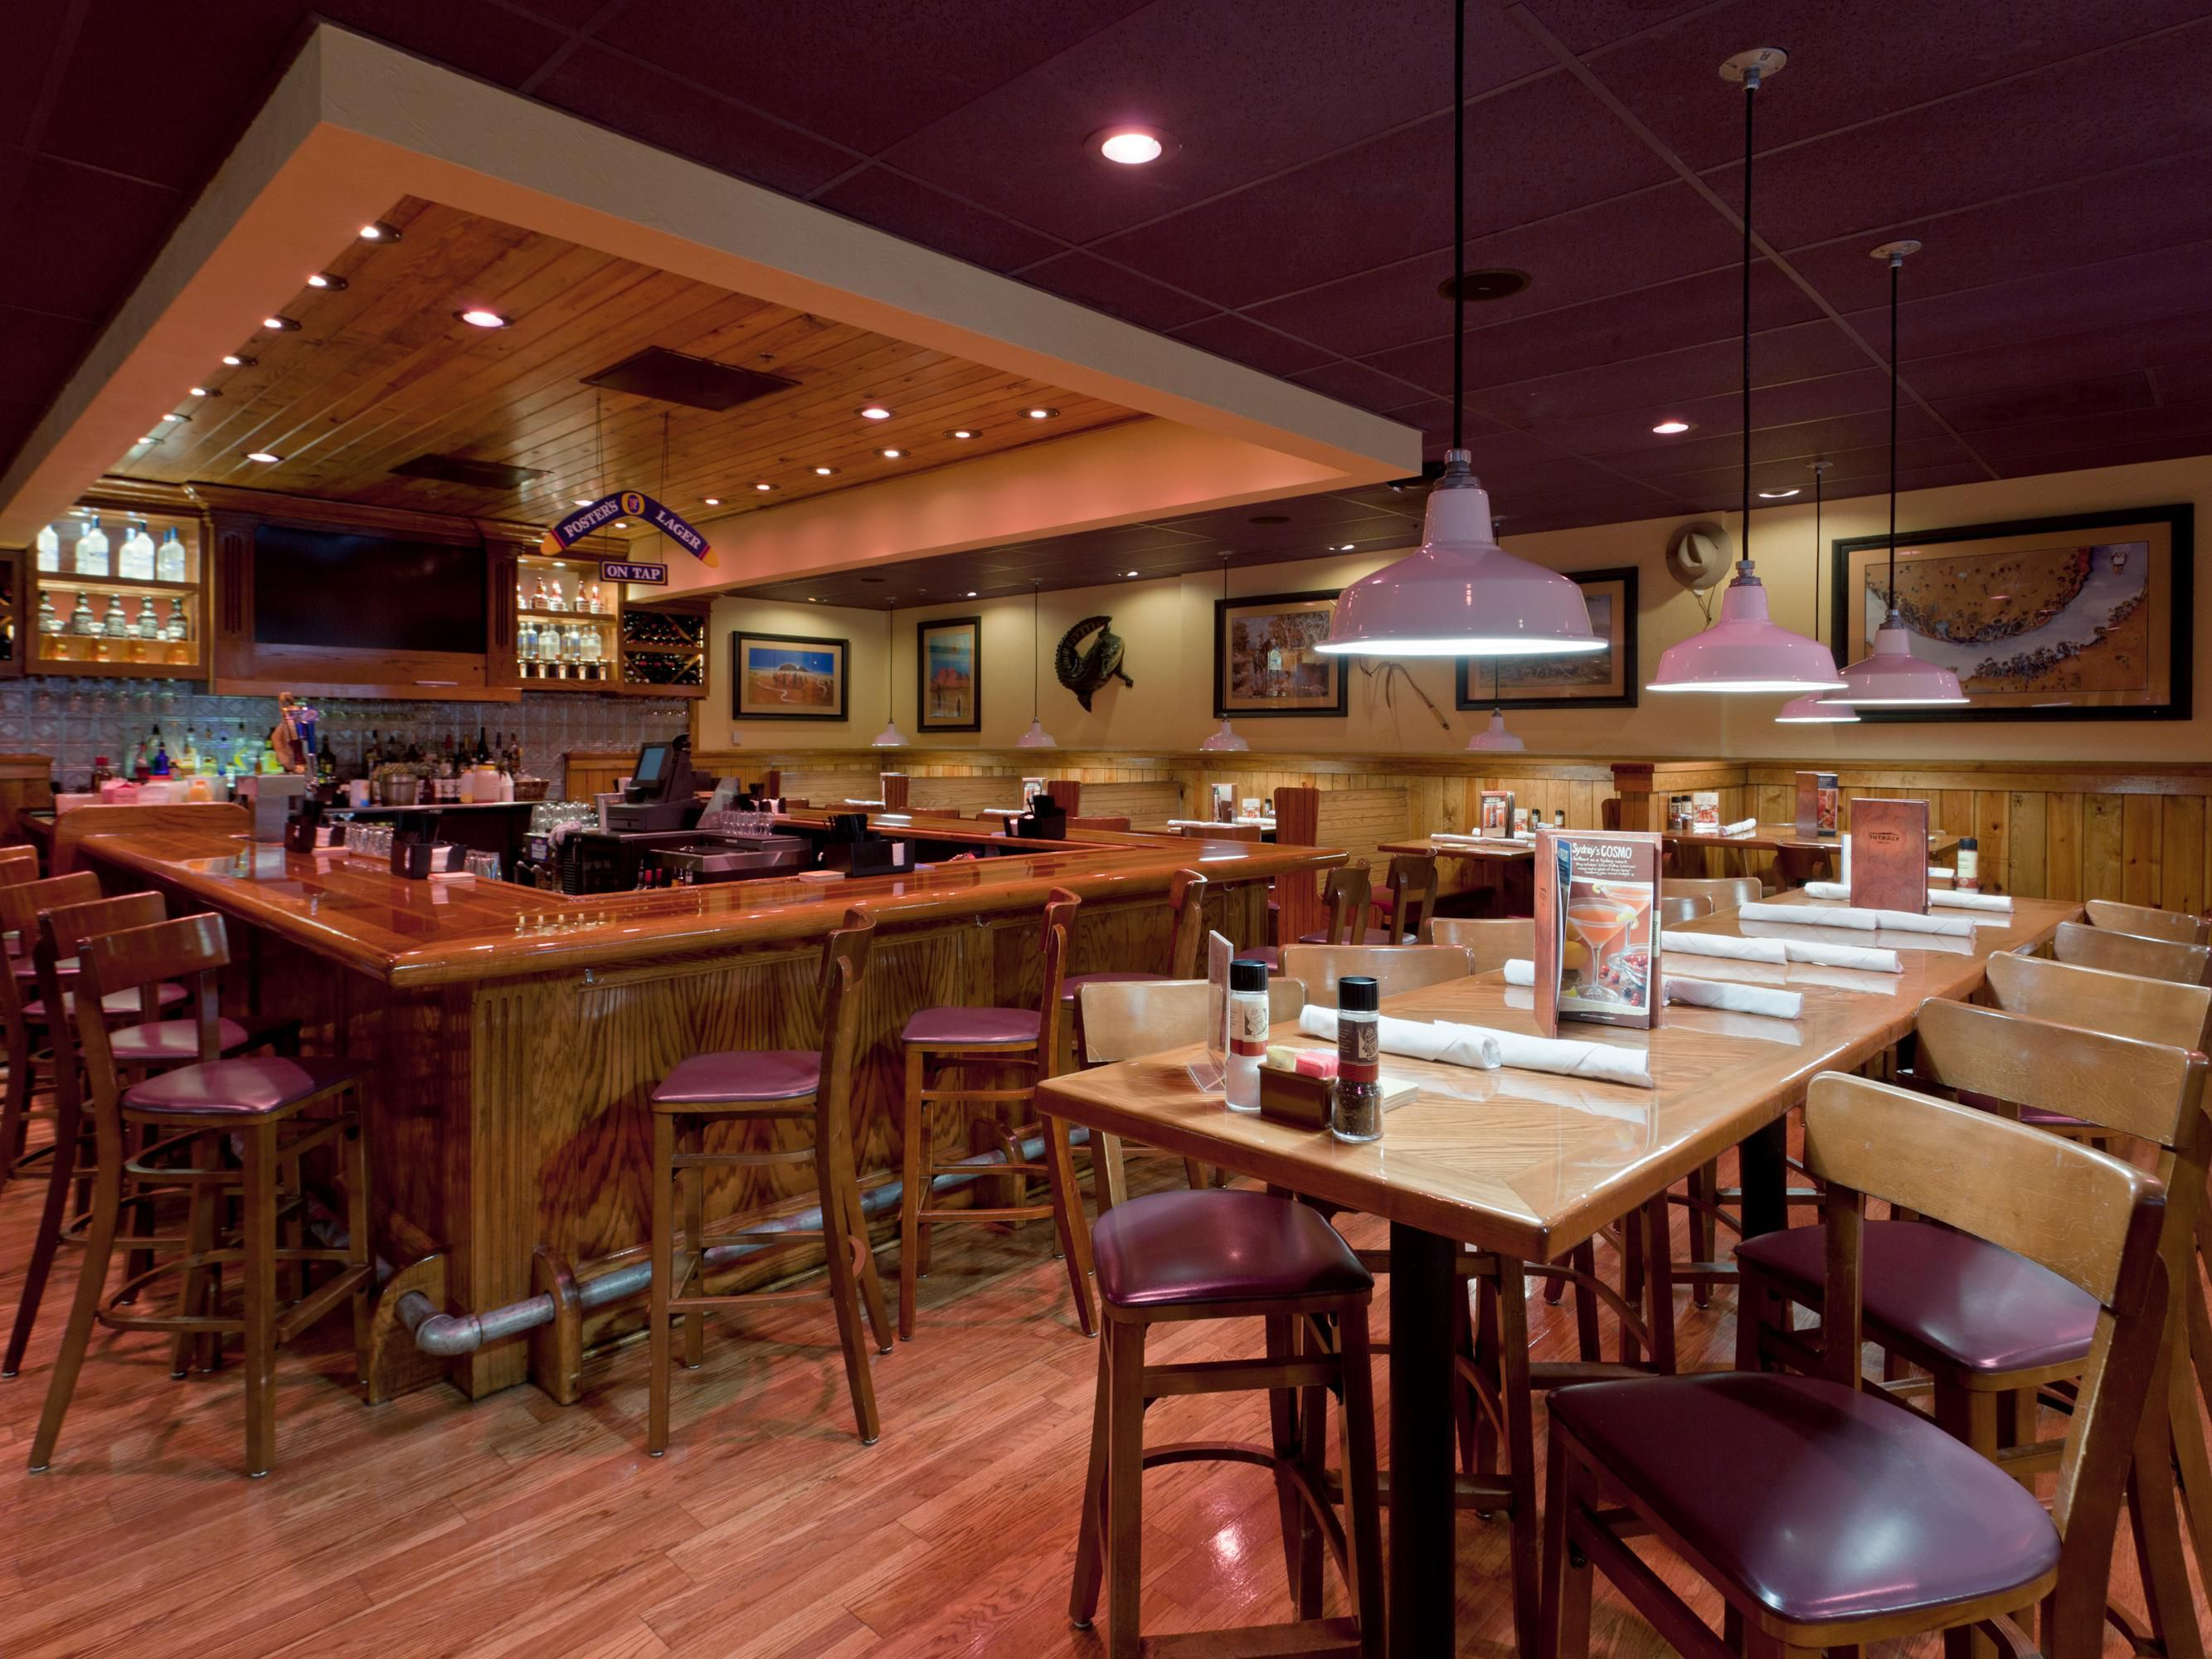 Catch up with friends at Outback's Restaurant and Bar